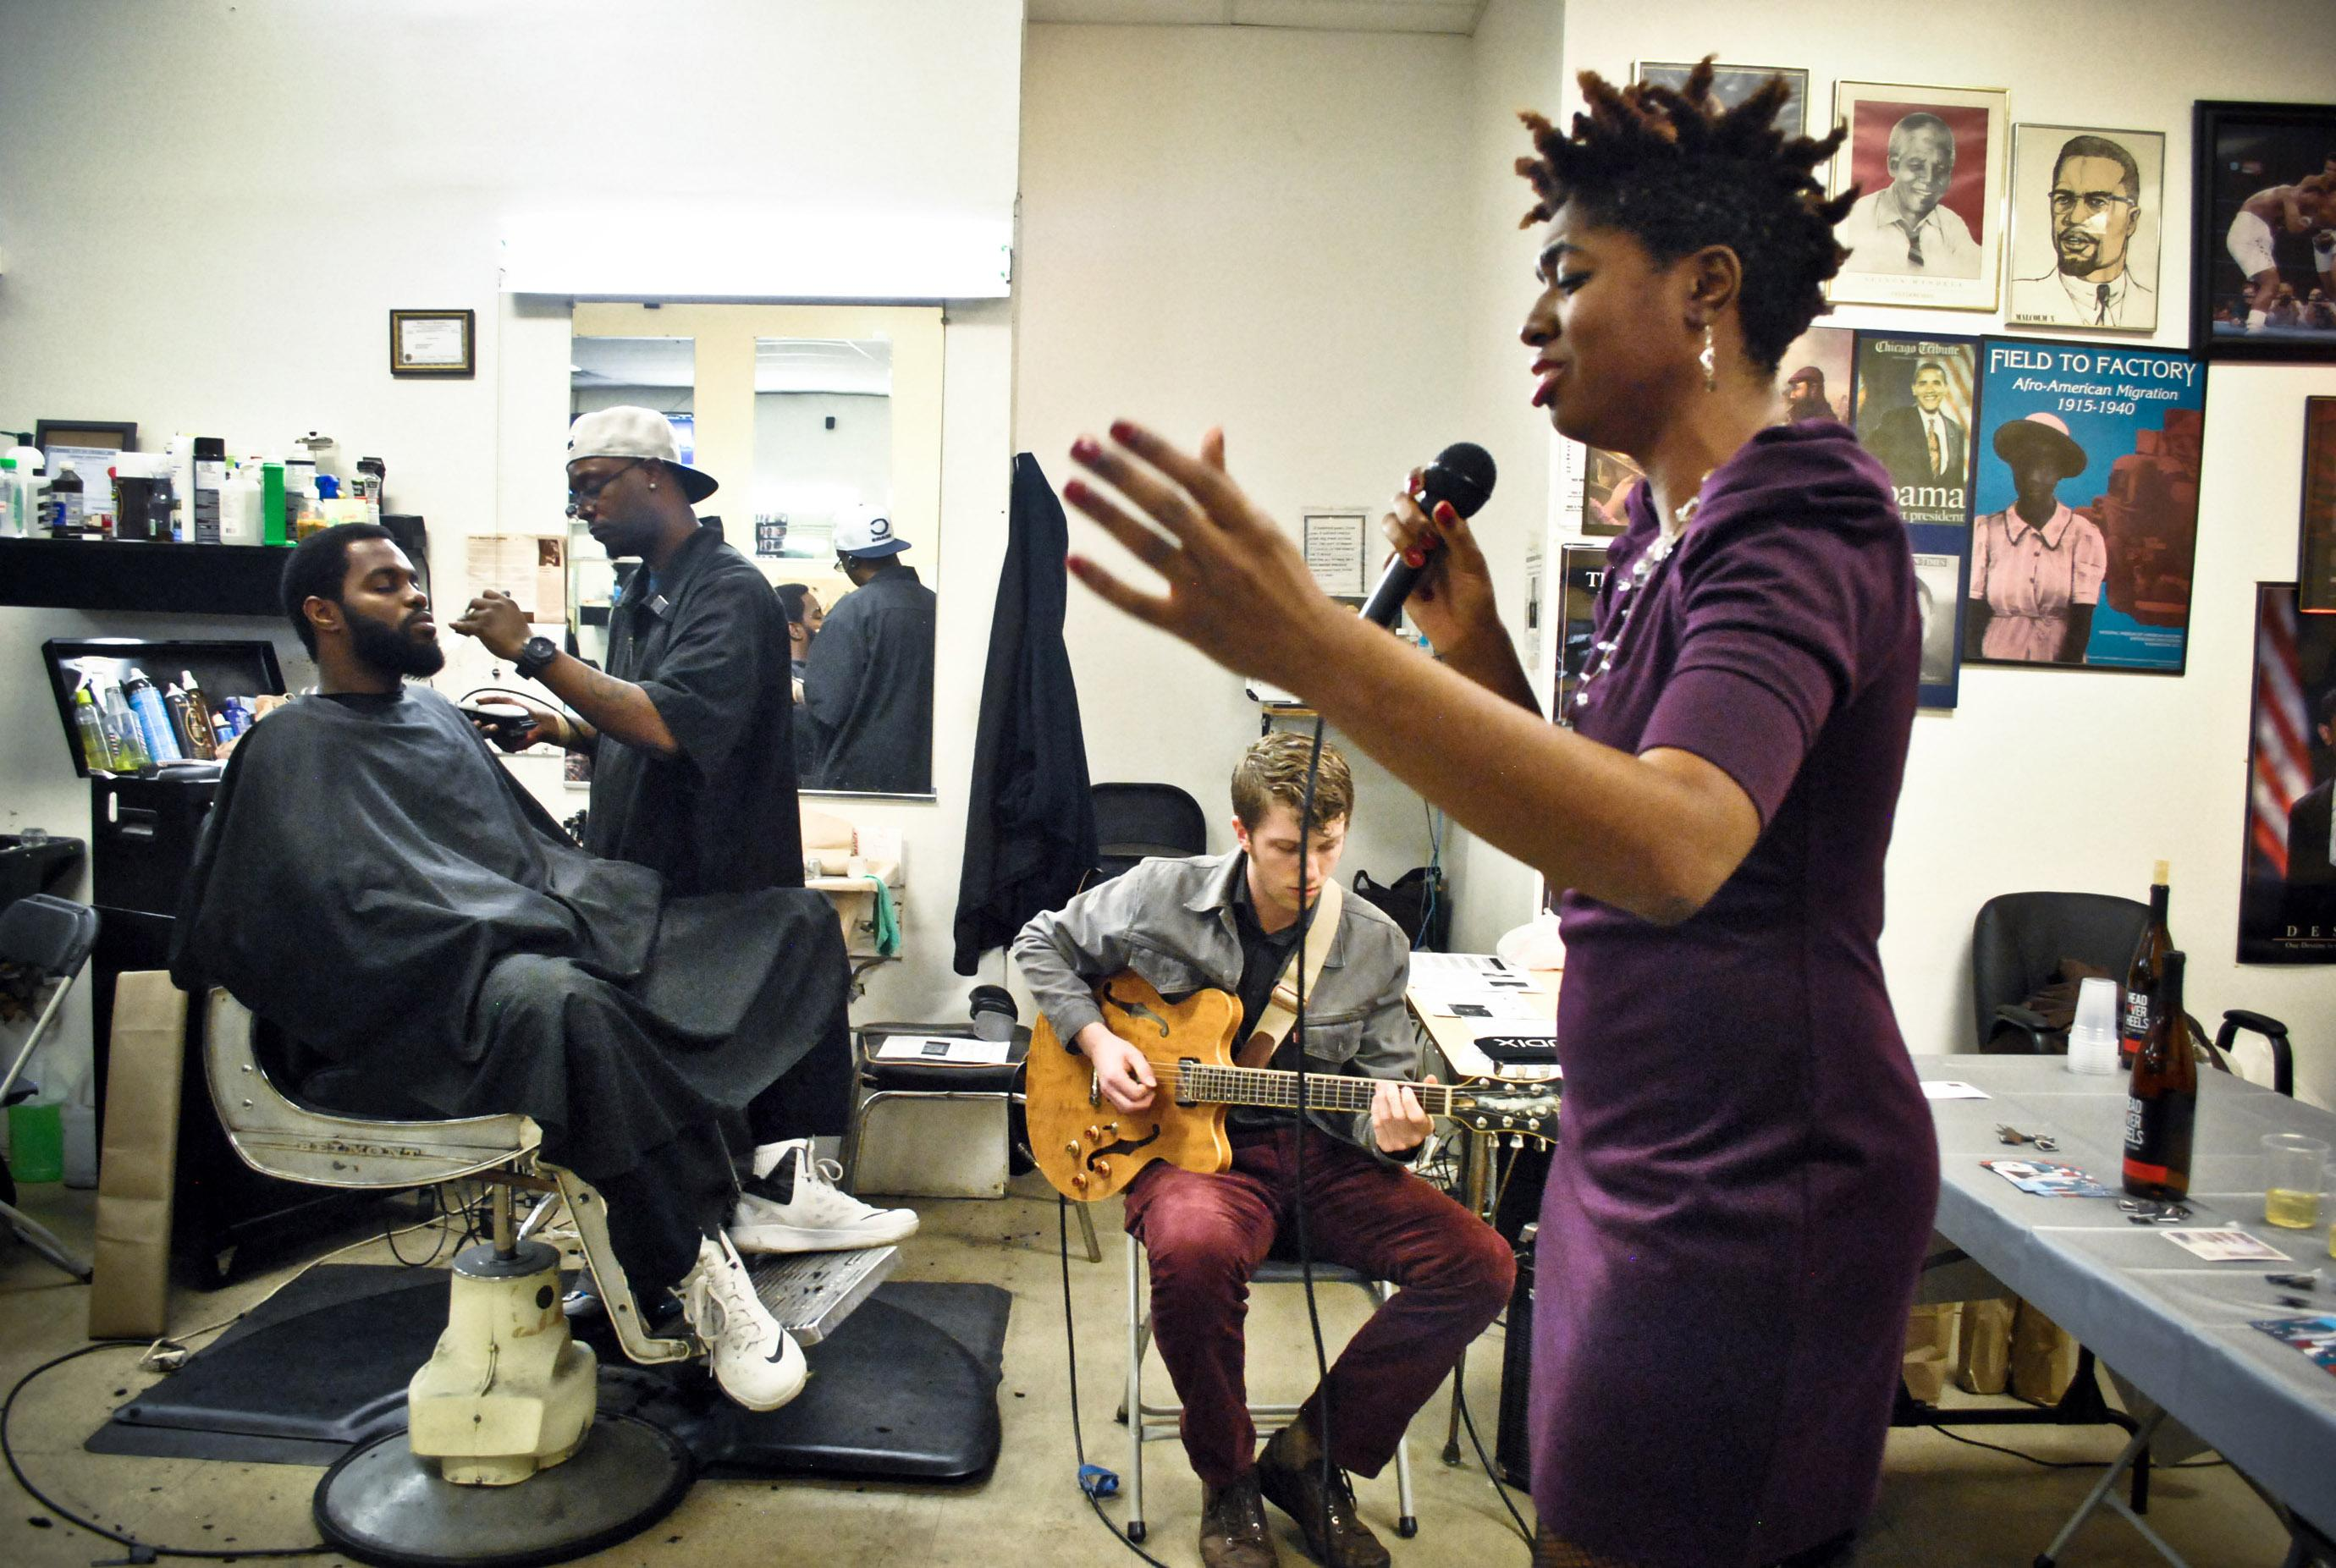 A young black woman sings into a microphone in a barbershop; a young white man sits behind her playing electric guitar. To his left a black man sits in a barber's chair getting his hair cut.